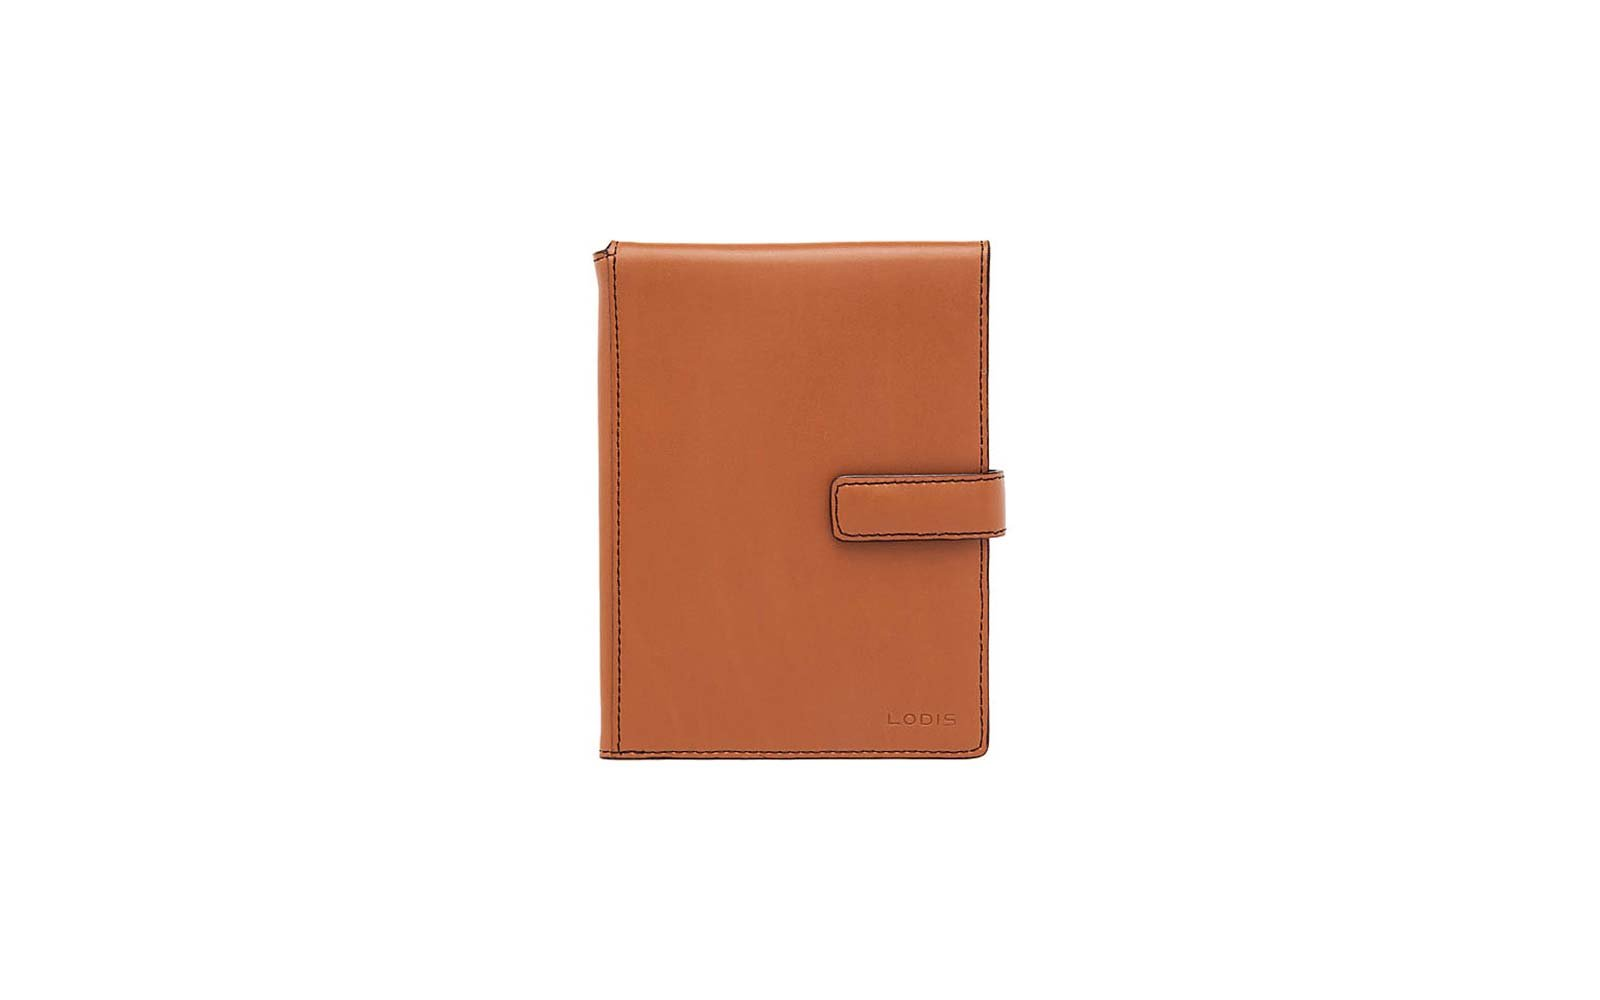 Lodis Audrey Passport Wallet